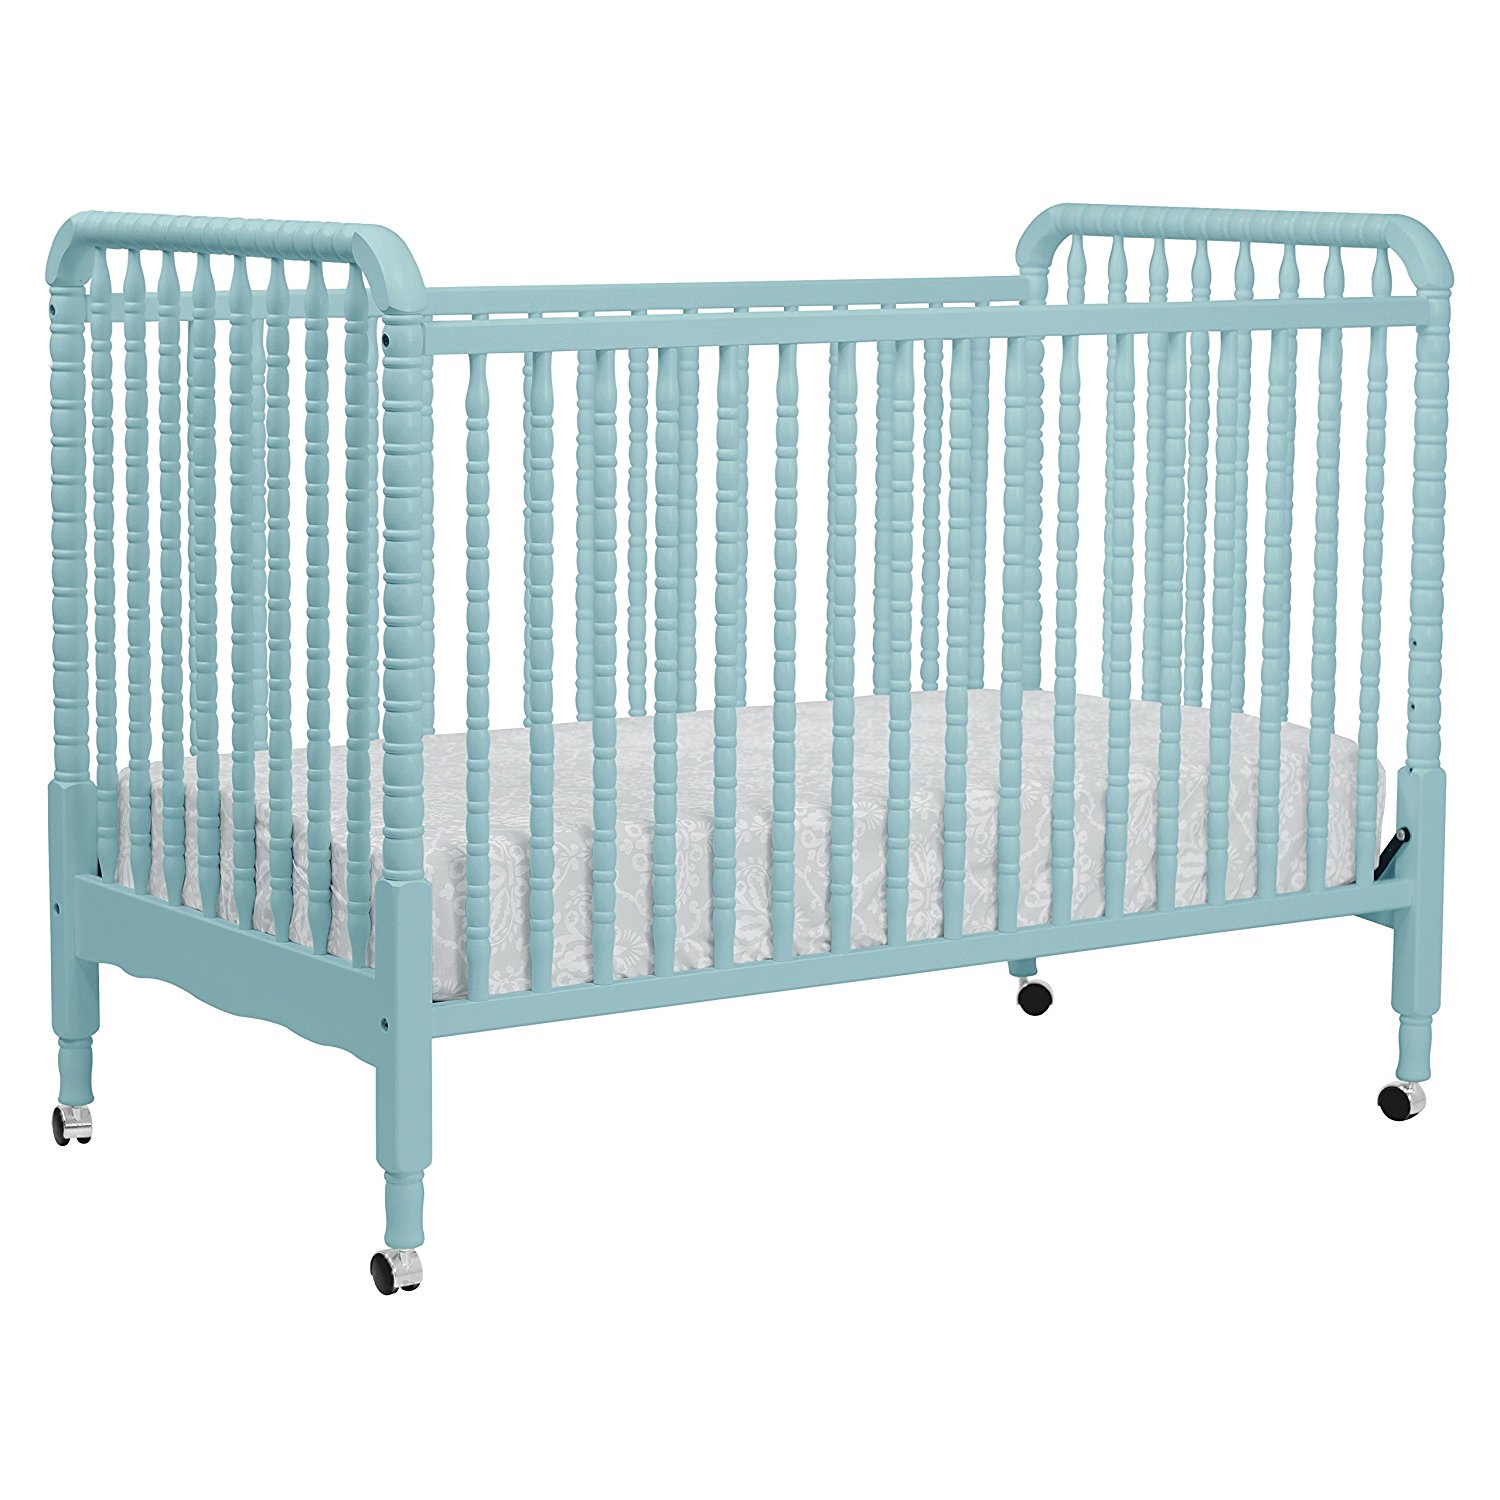 DaVinci Jenny Lind Stationary Crib With Toddler Bed Conversion Kit